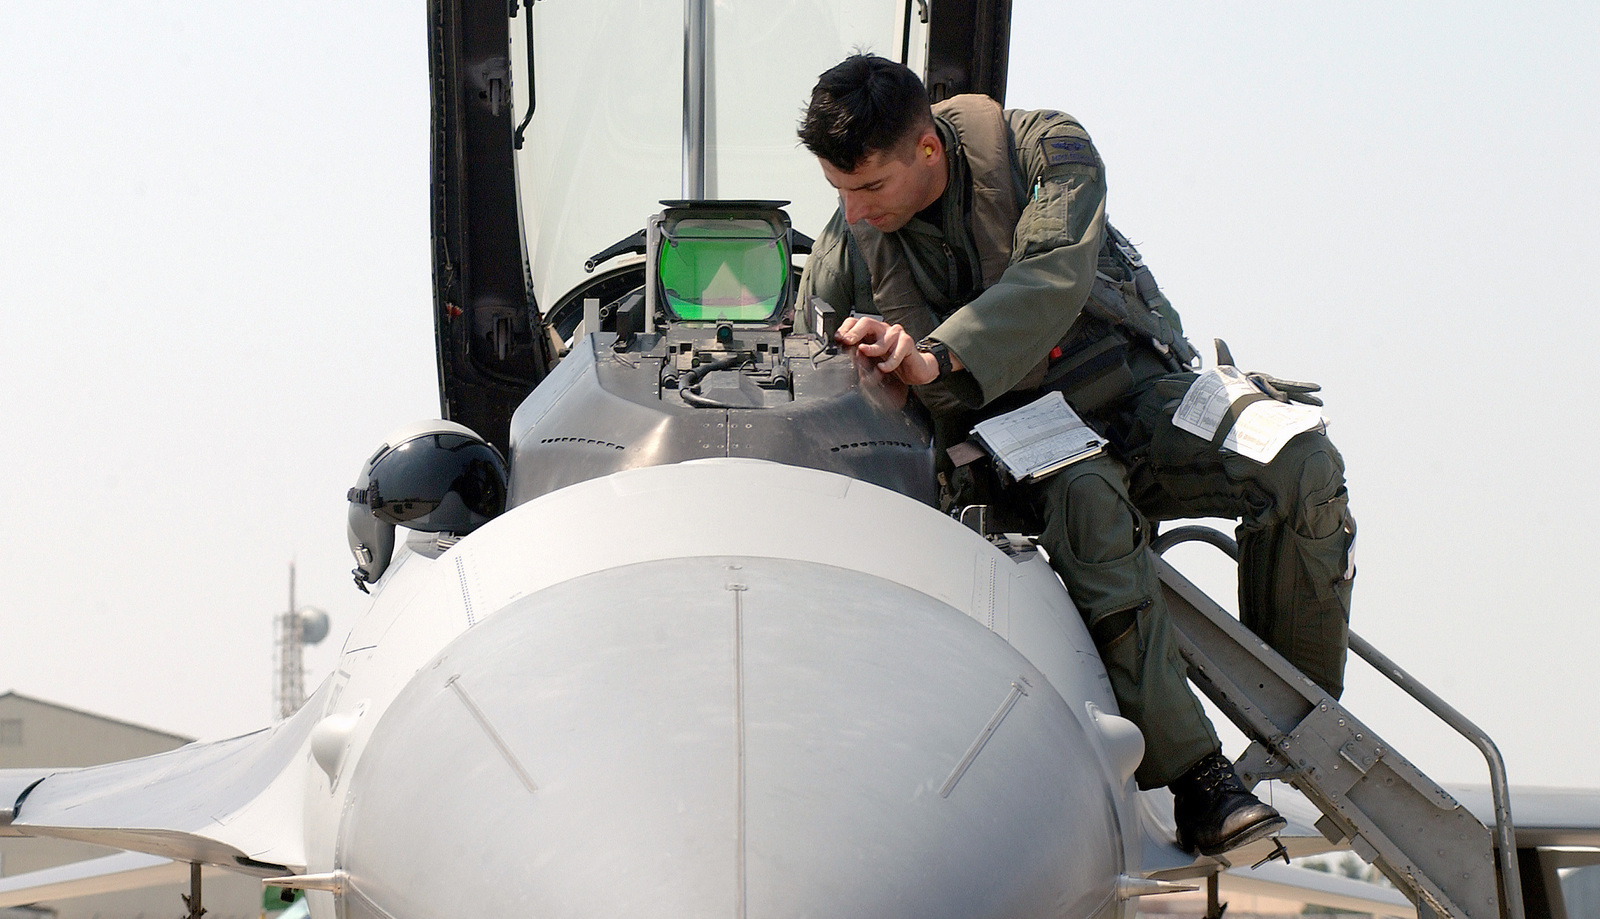 "US Air Force (USAF) First Lieutenant (1LT) Michael Driscoll, F-16C ""Fighting Falcon"" aircraft Pilot assigned to the 35th Fighter Squadron (FS), inspect the cockpit of his aircraft before a mission, on the flight line at Kunsan Air Base (AB), Republic of Korea (ROK)"